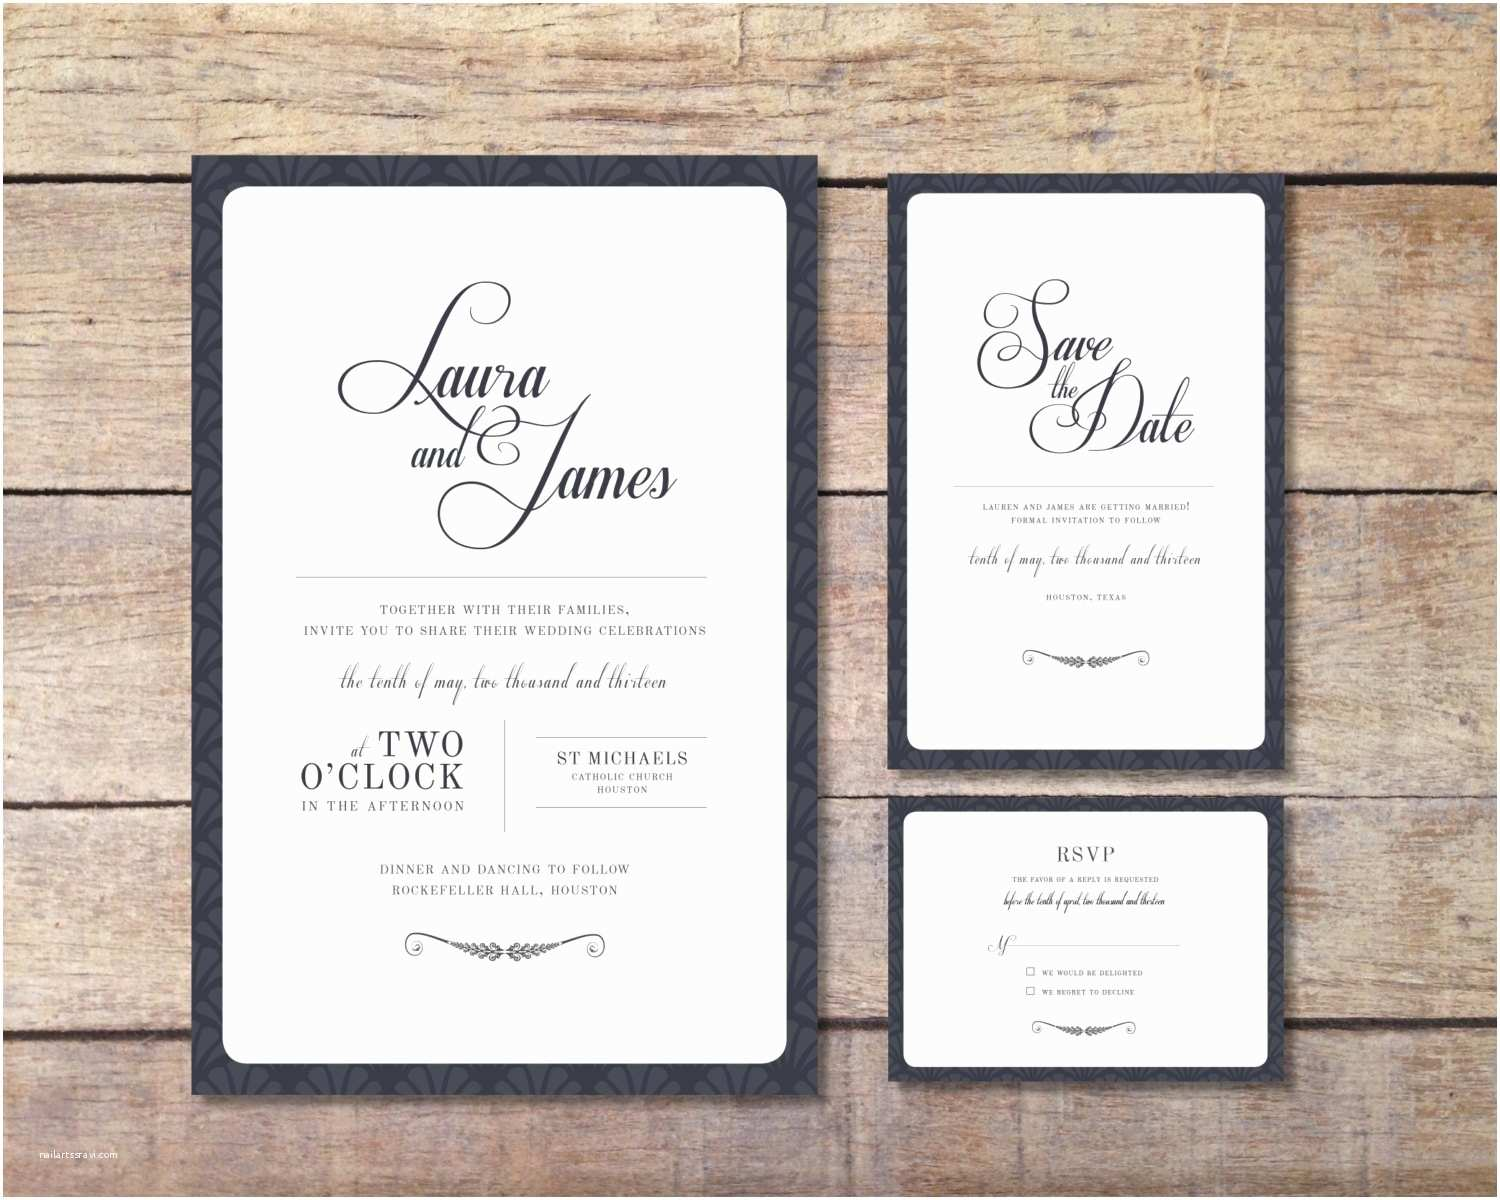 Elegant Wedding Invitation Sets Wedding Invitation Set – Elegant Design – Printable